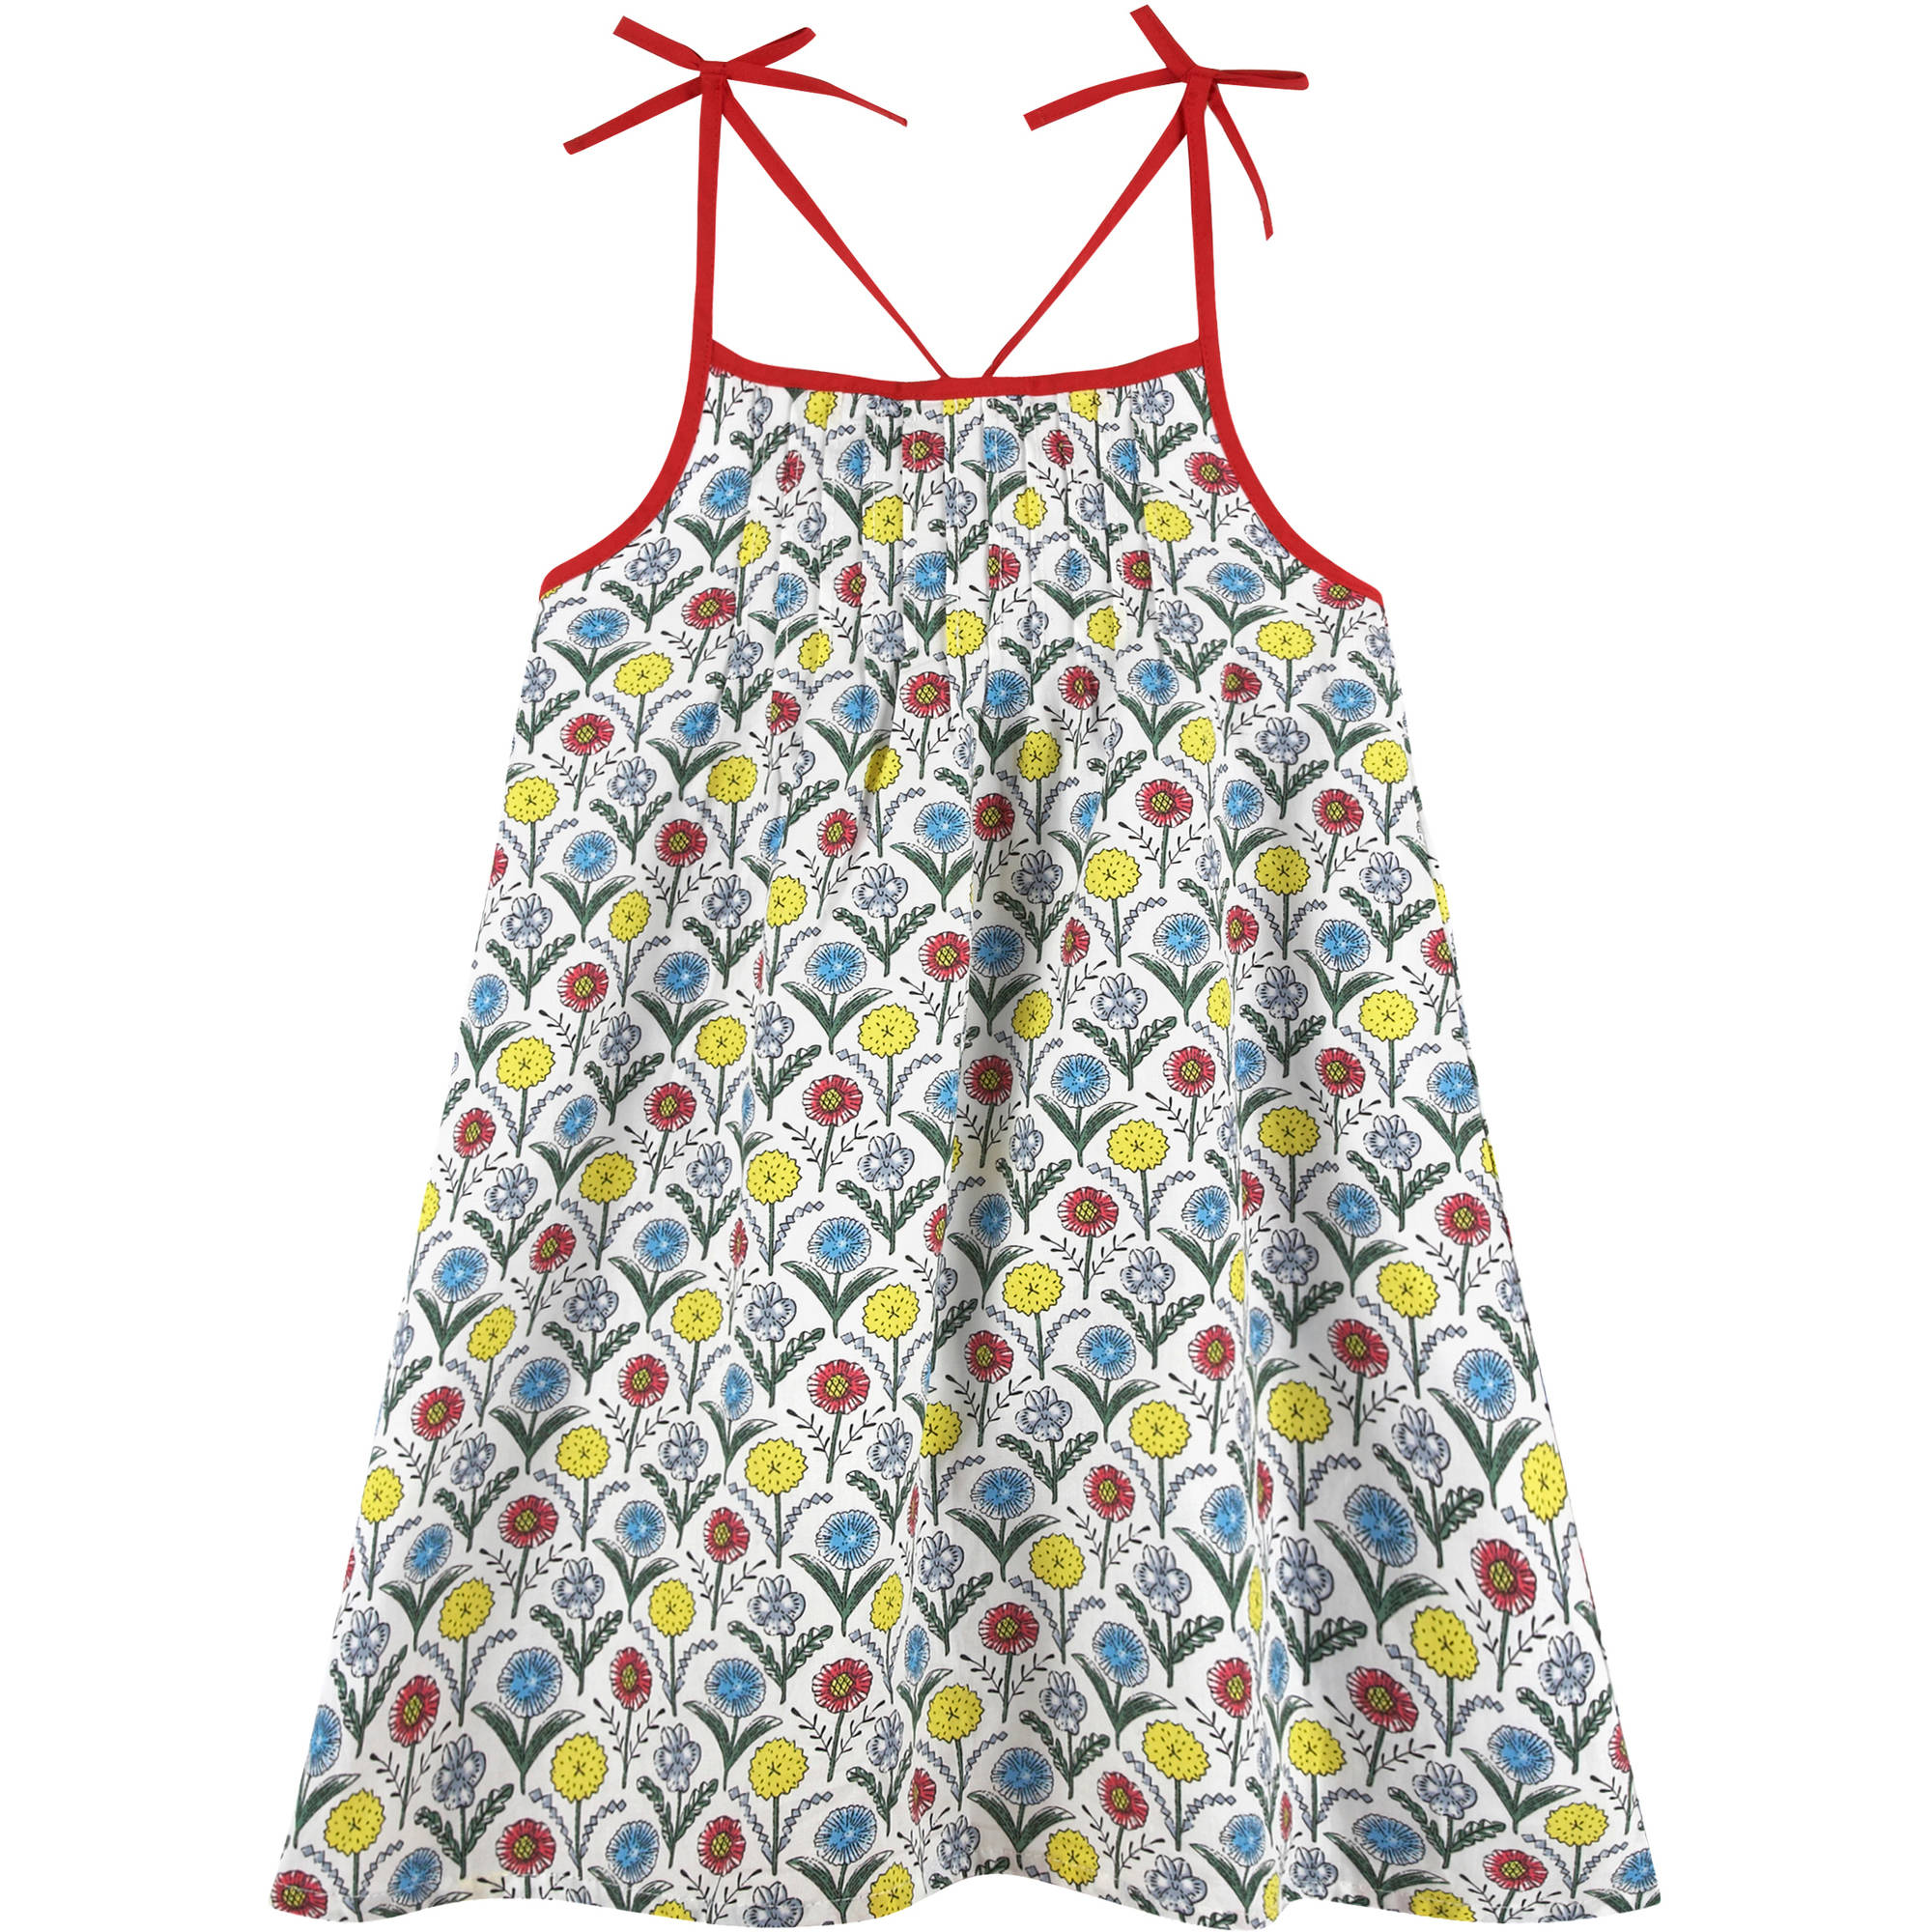 G-Cutee Girls' Floral Dress with Shoulder Ties